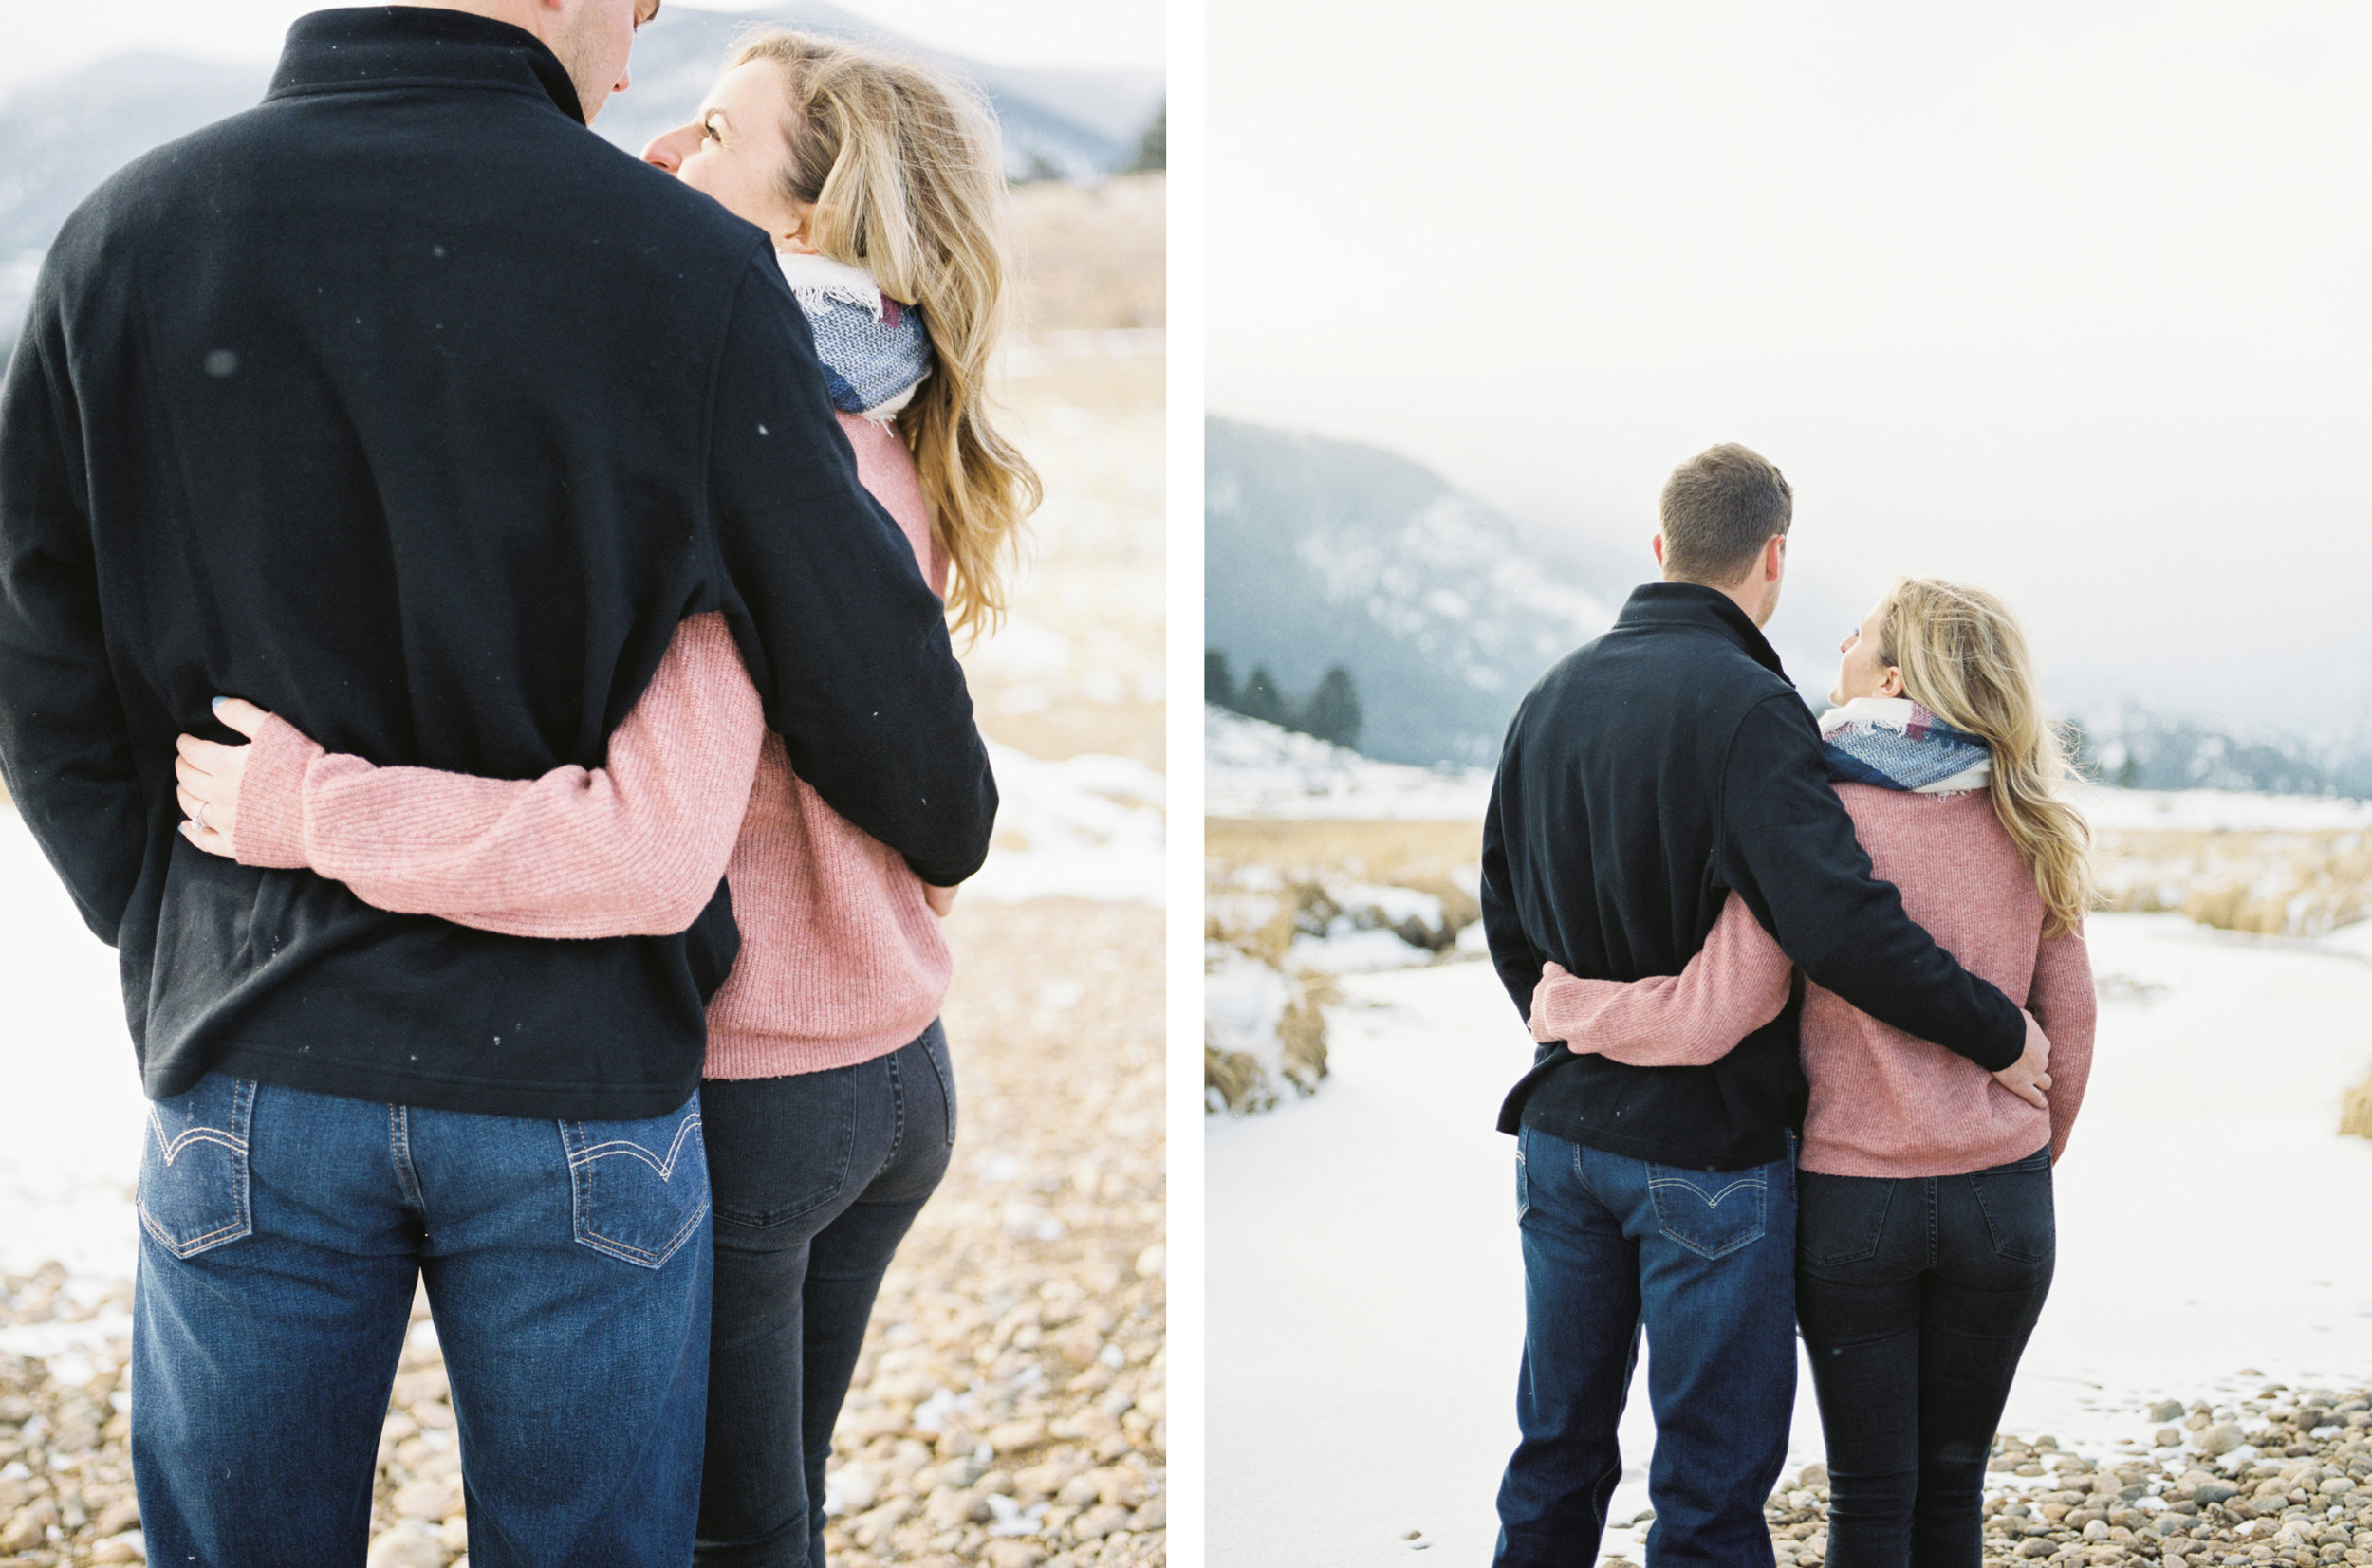 Colorado Winter Engagement Session - Fine Art Film Photographer Tara Bielecki Photography